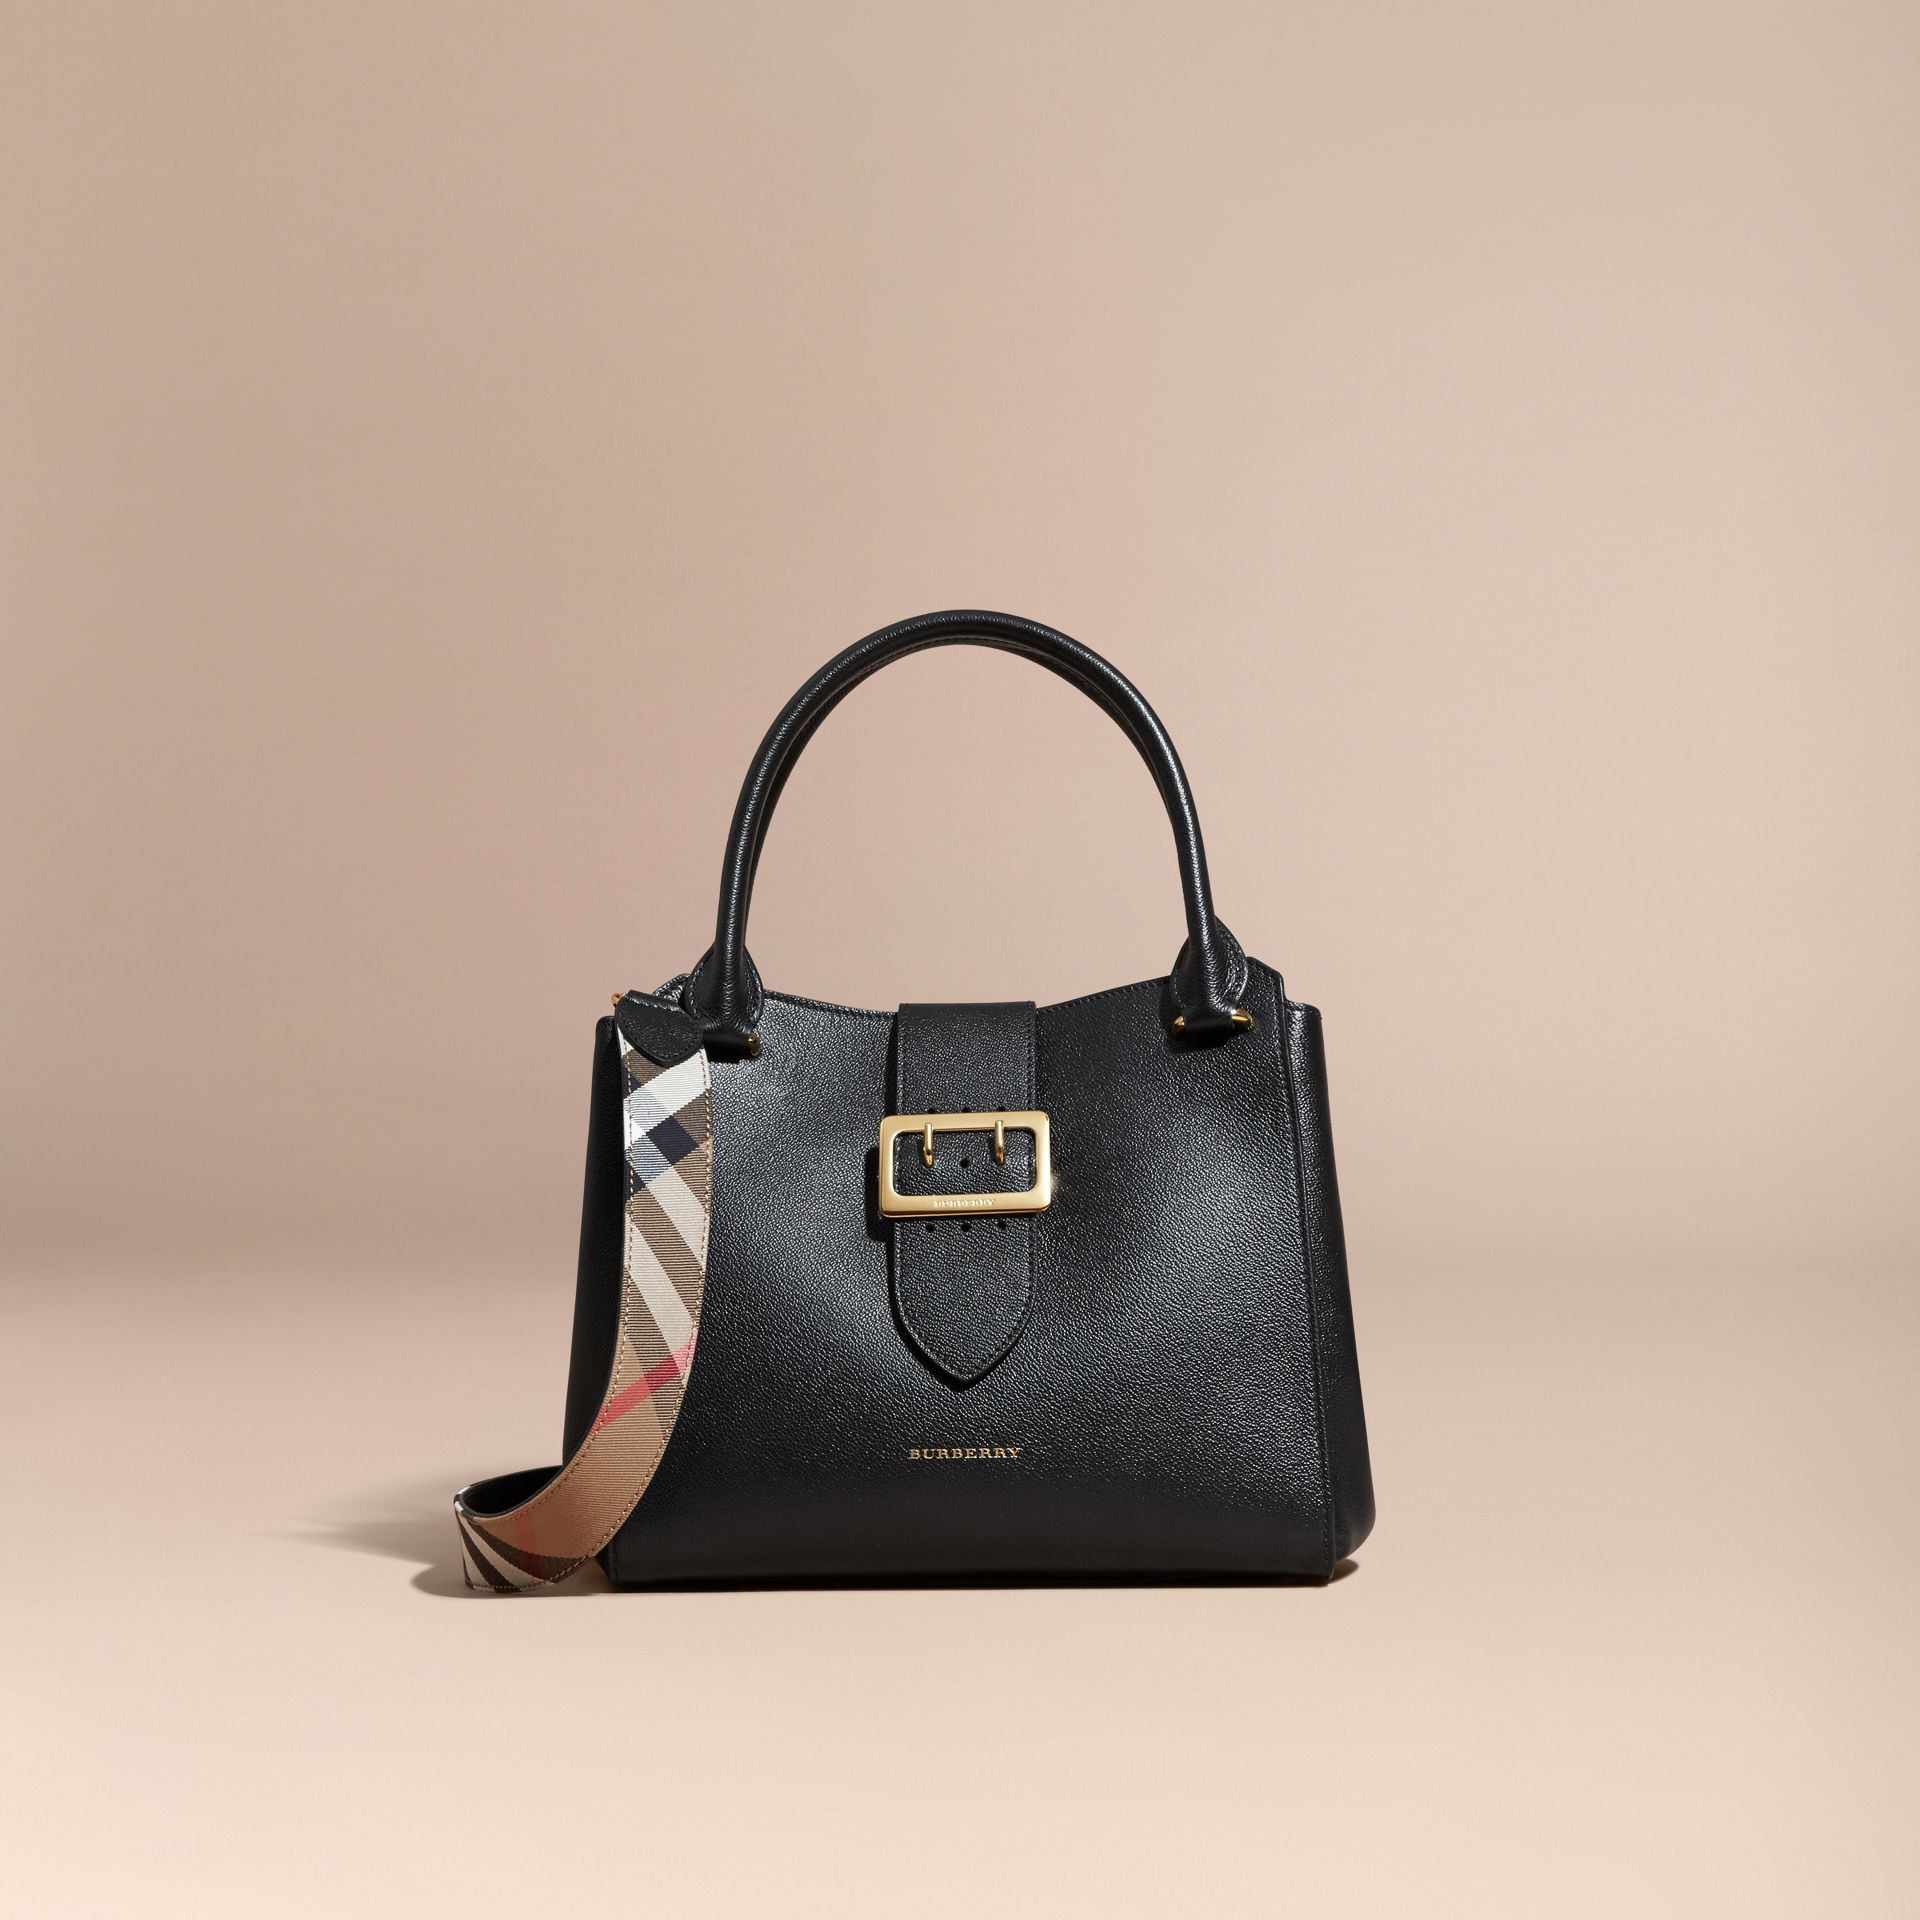 Noir Sac tote The Buckle medium en cuir grené Noir - photo de la galerie 9